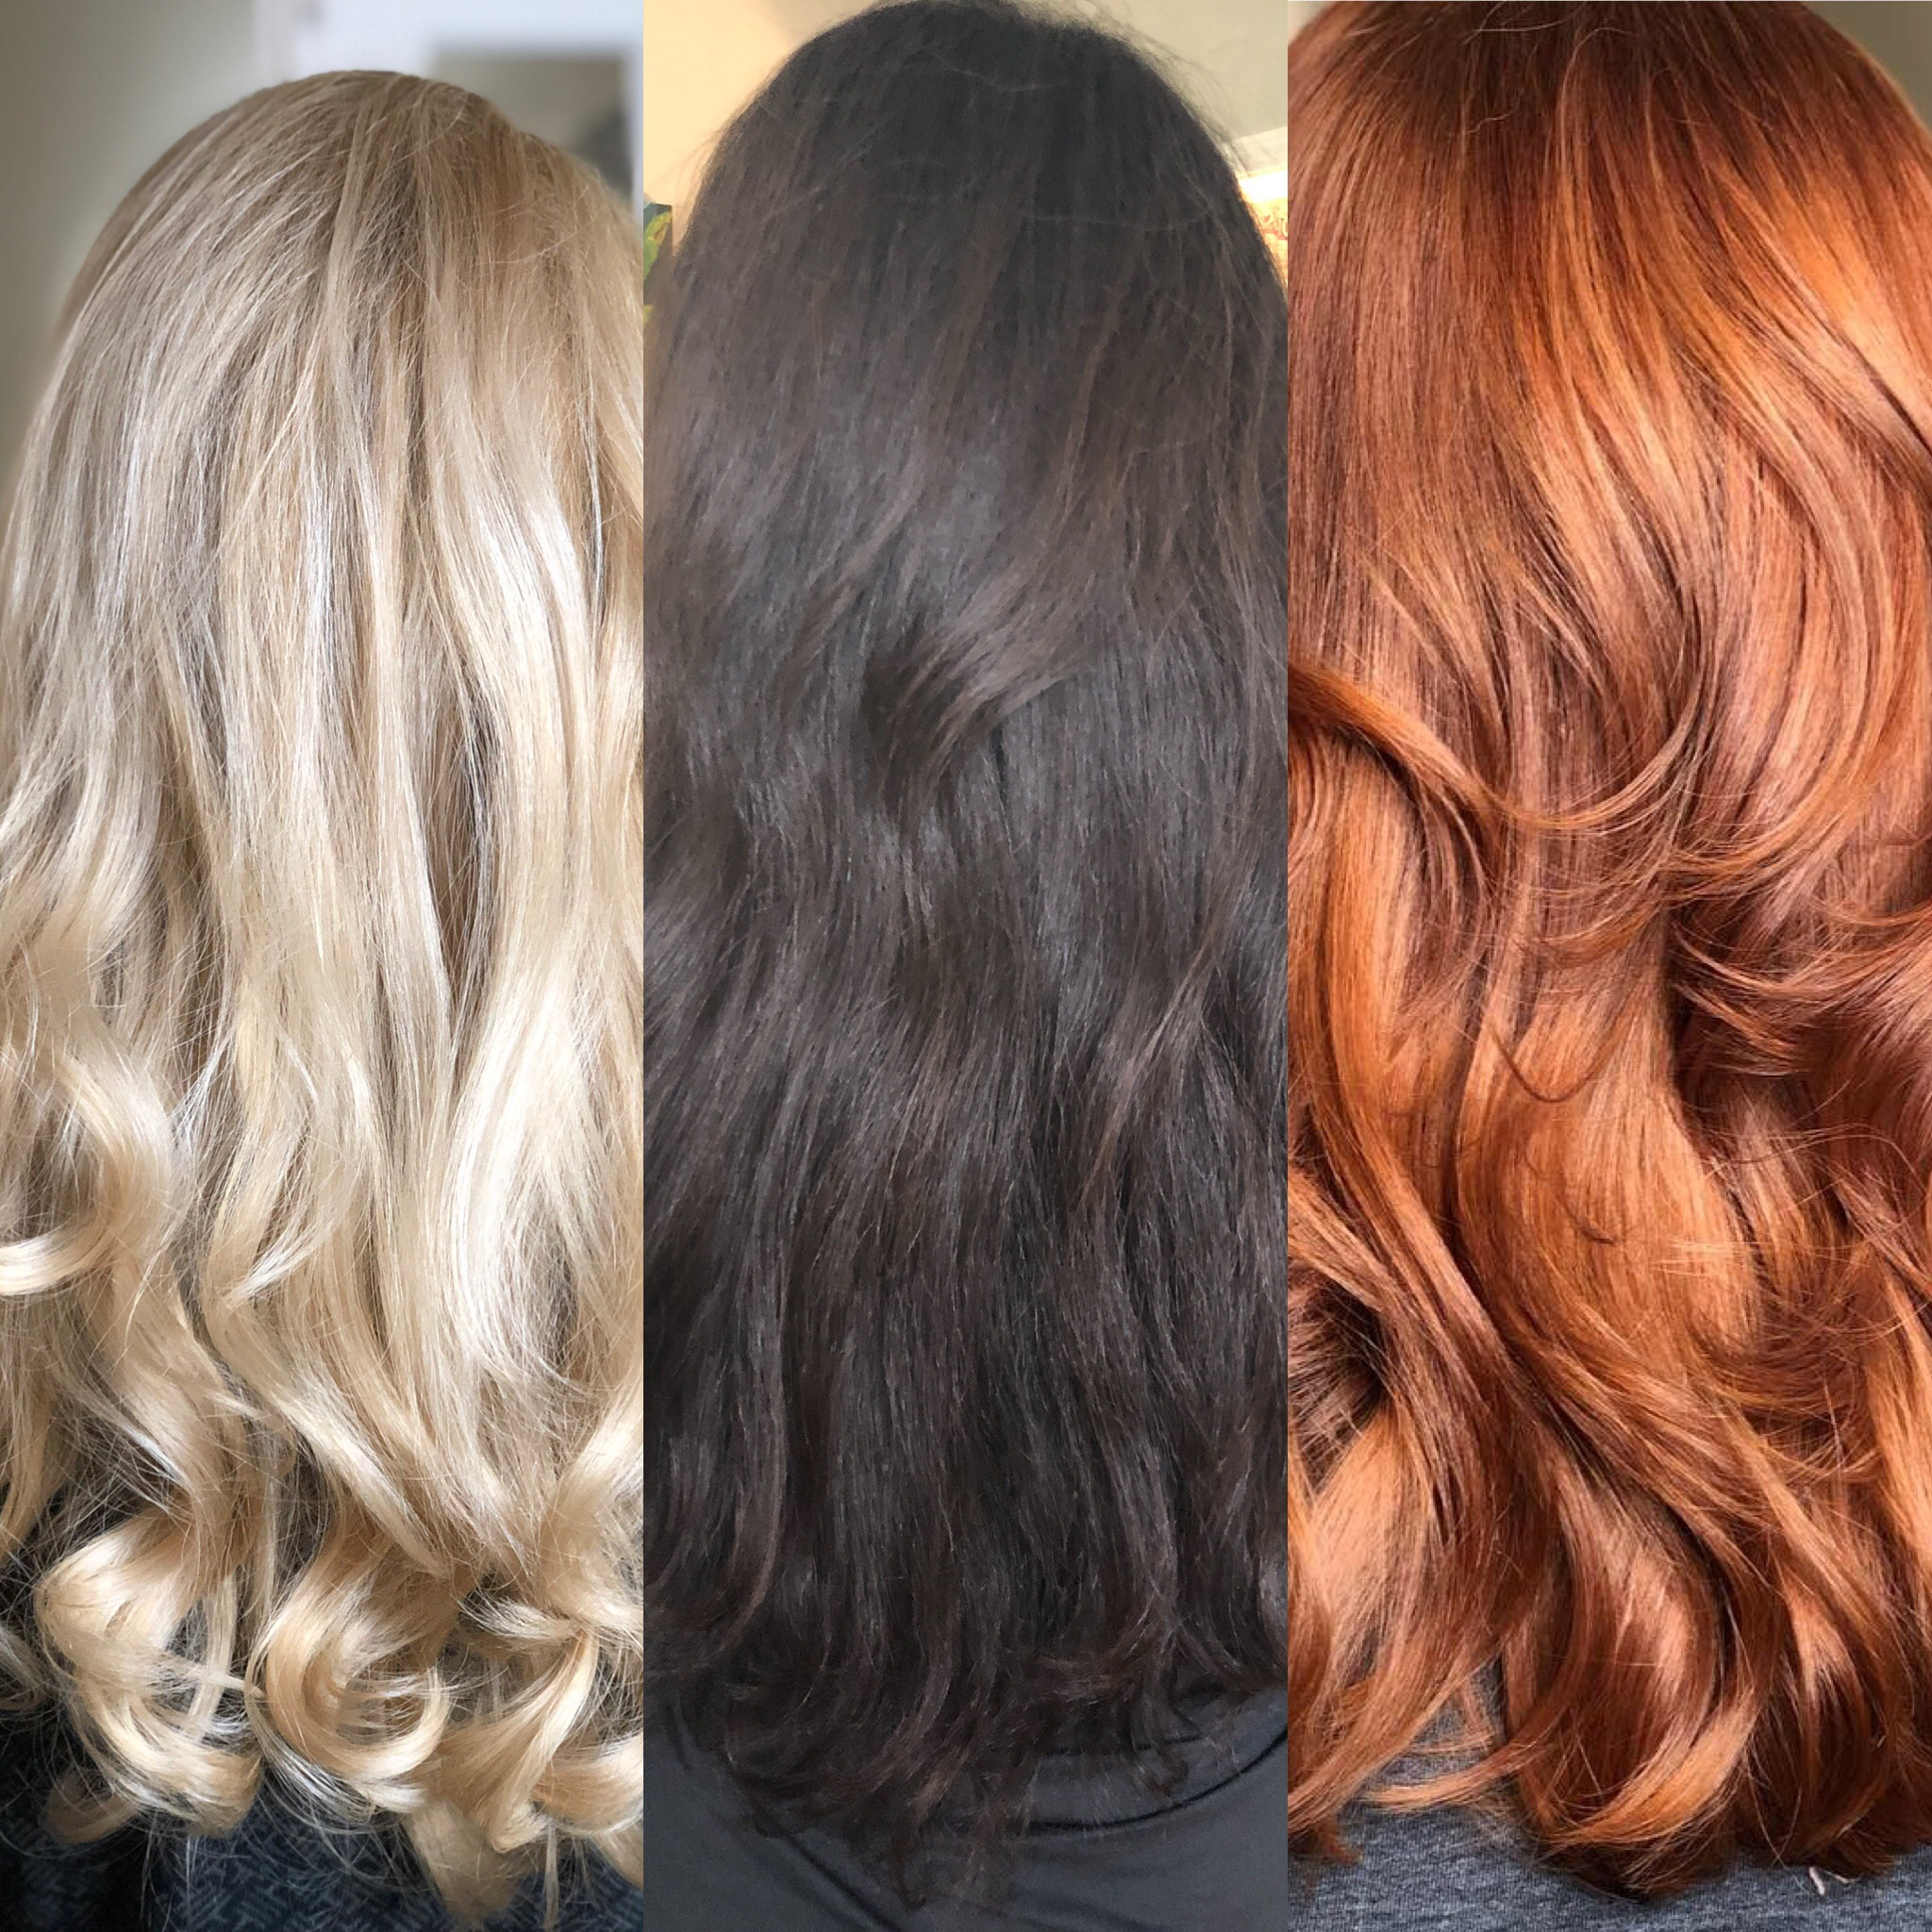 Hair color specialis in Nashville Tn.